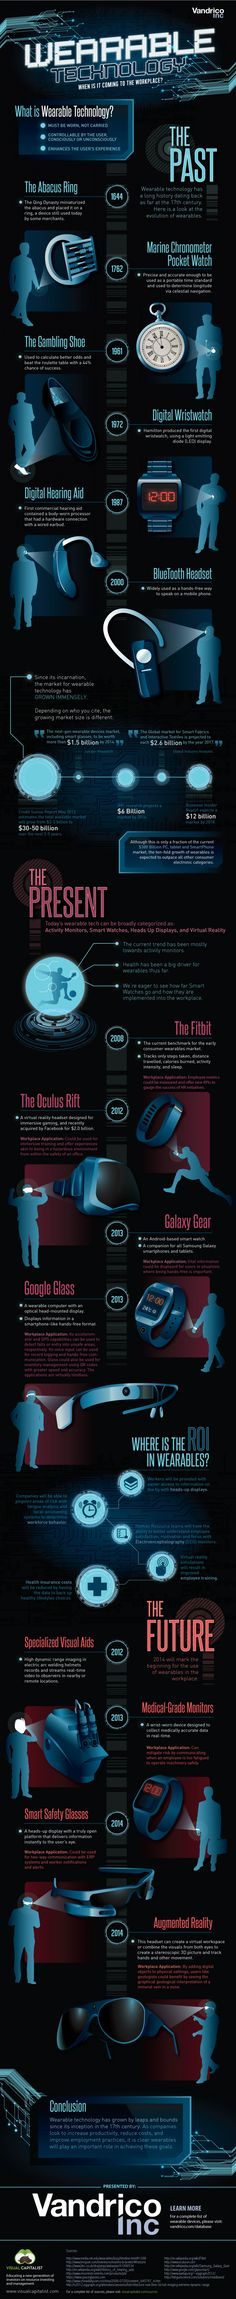 Wearable Technology: When is it Coming to the Workplace? #infographic #Technology #Wearable